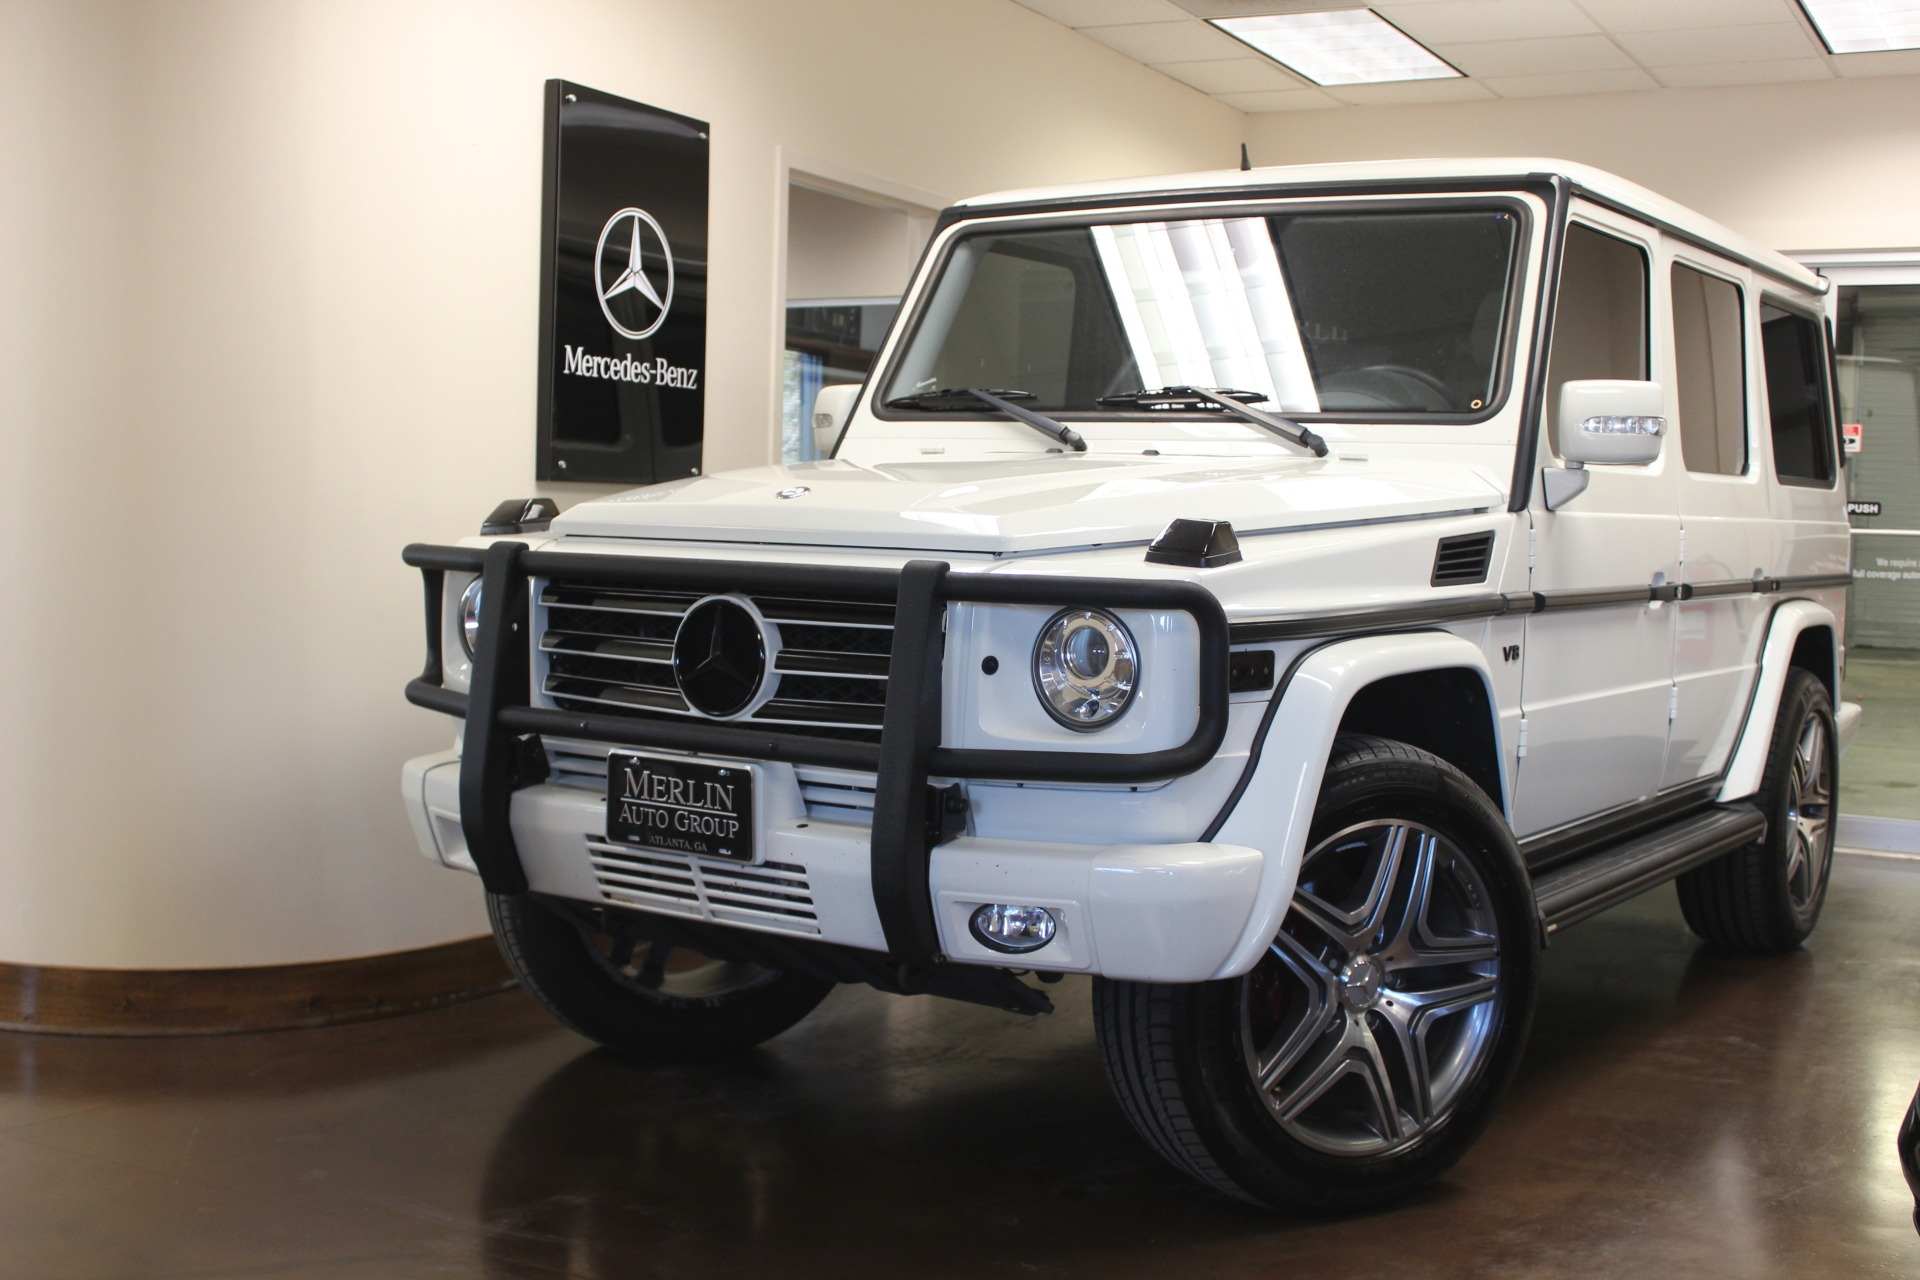 used 2011 mercedes benz g class stock p3337 ultra luxury car from merlin auto group. Black Bedroom Furniture Sets. Home Design Ideas